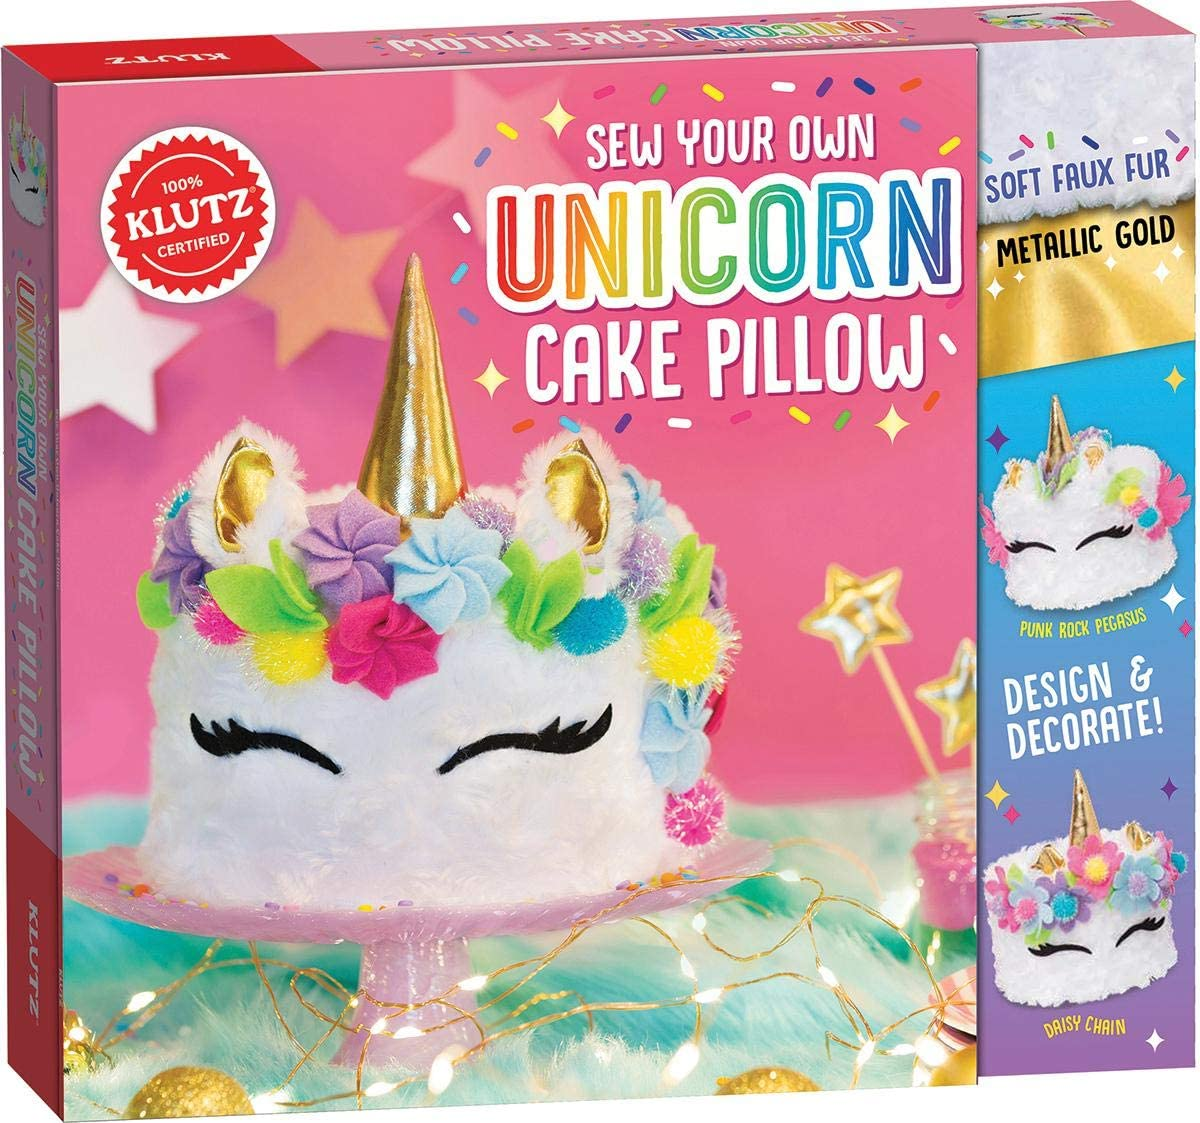 Cover of Unicorn Cake Pillow Box